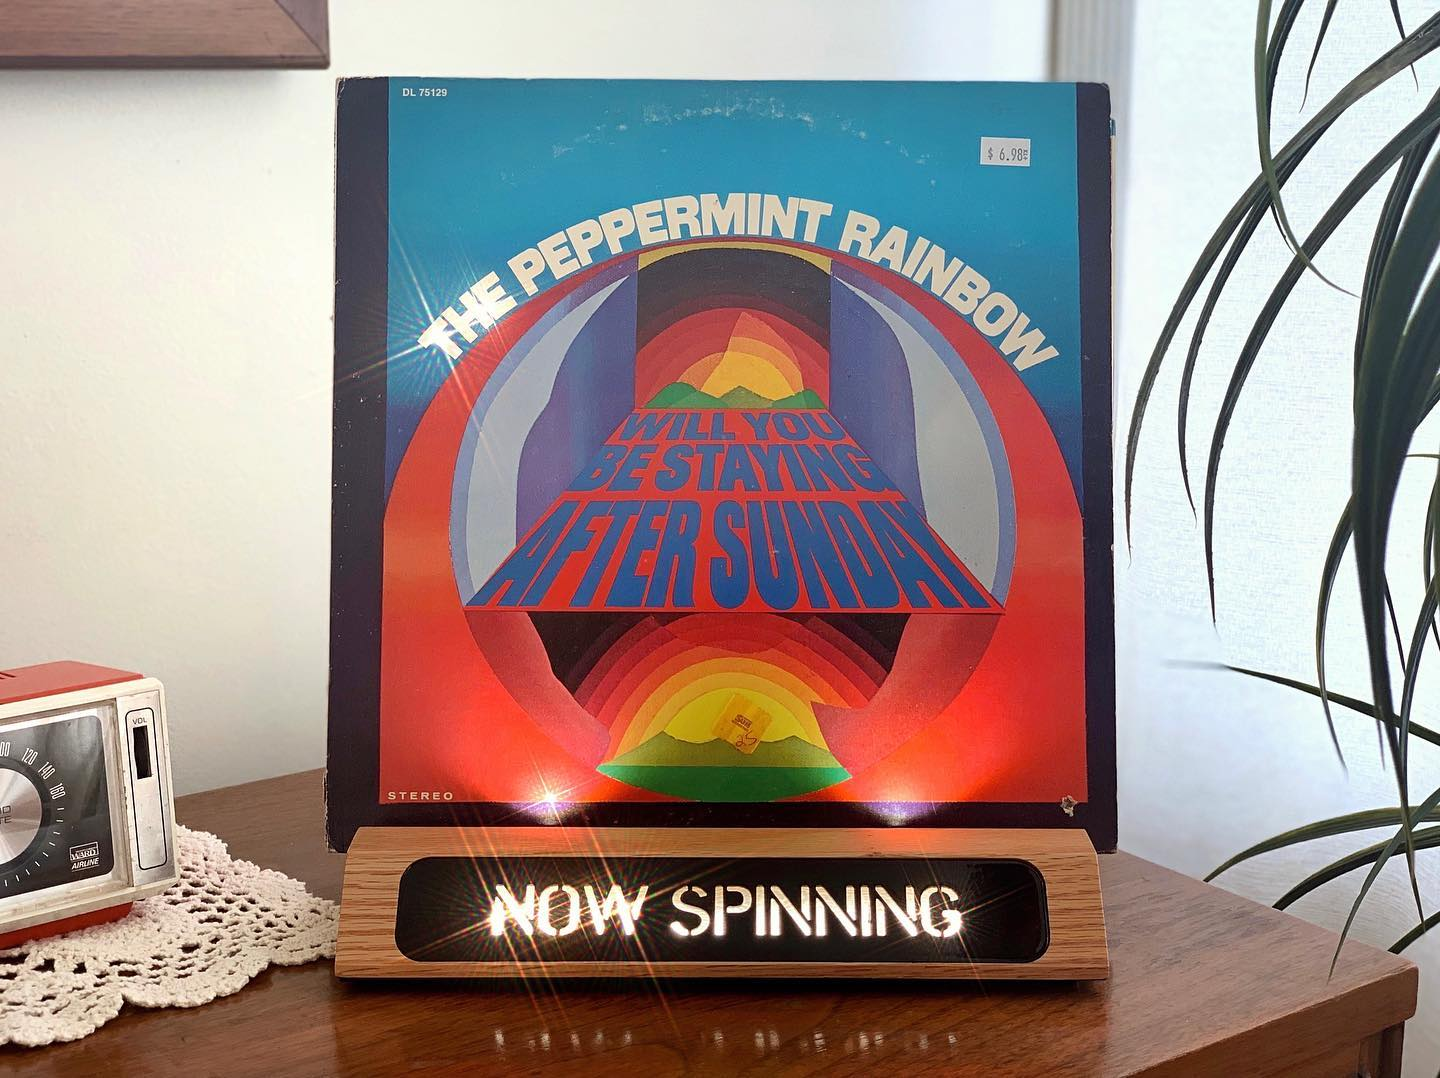 Vinyl-a-Day 30: The Peppermint Rainbow - Will You Be Staying After Sunday? (Decca, 1969)